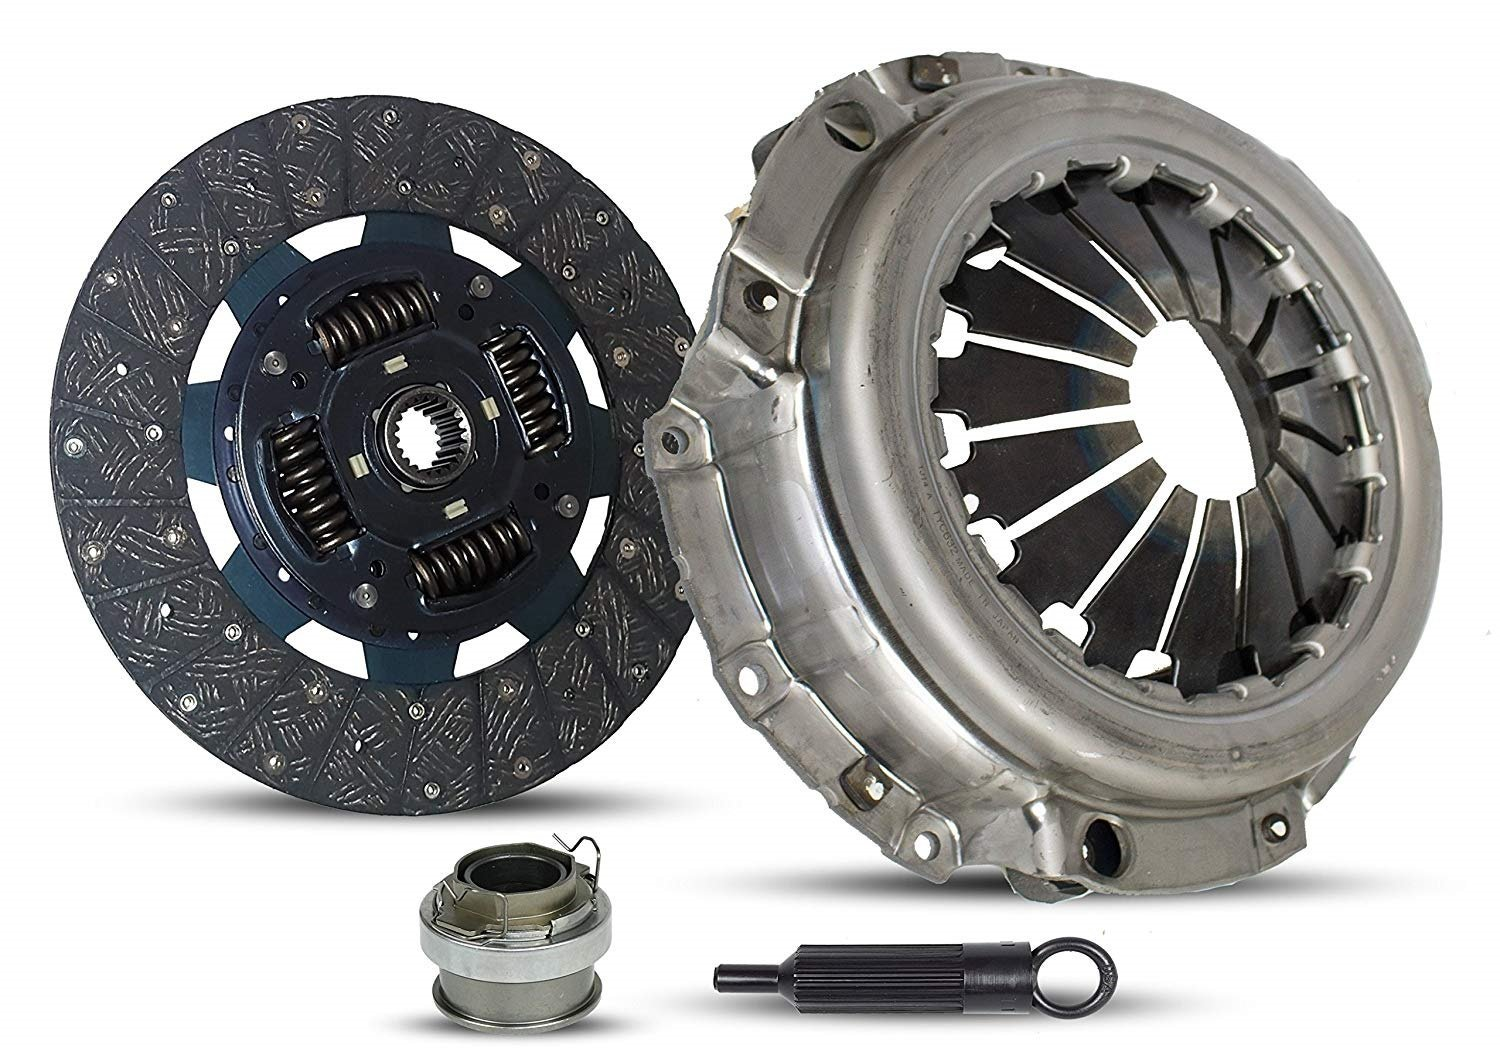 HD Kit de embrague para Toyota Tacoma Tundra FJ Cruiser 4.0L V6 1 Grfe: Amazon.es: Coche y moto